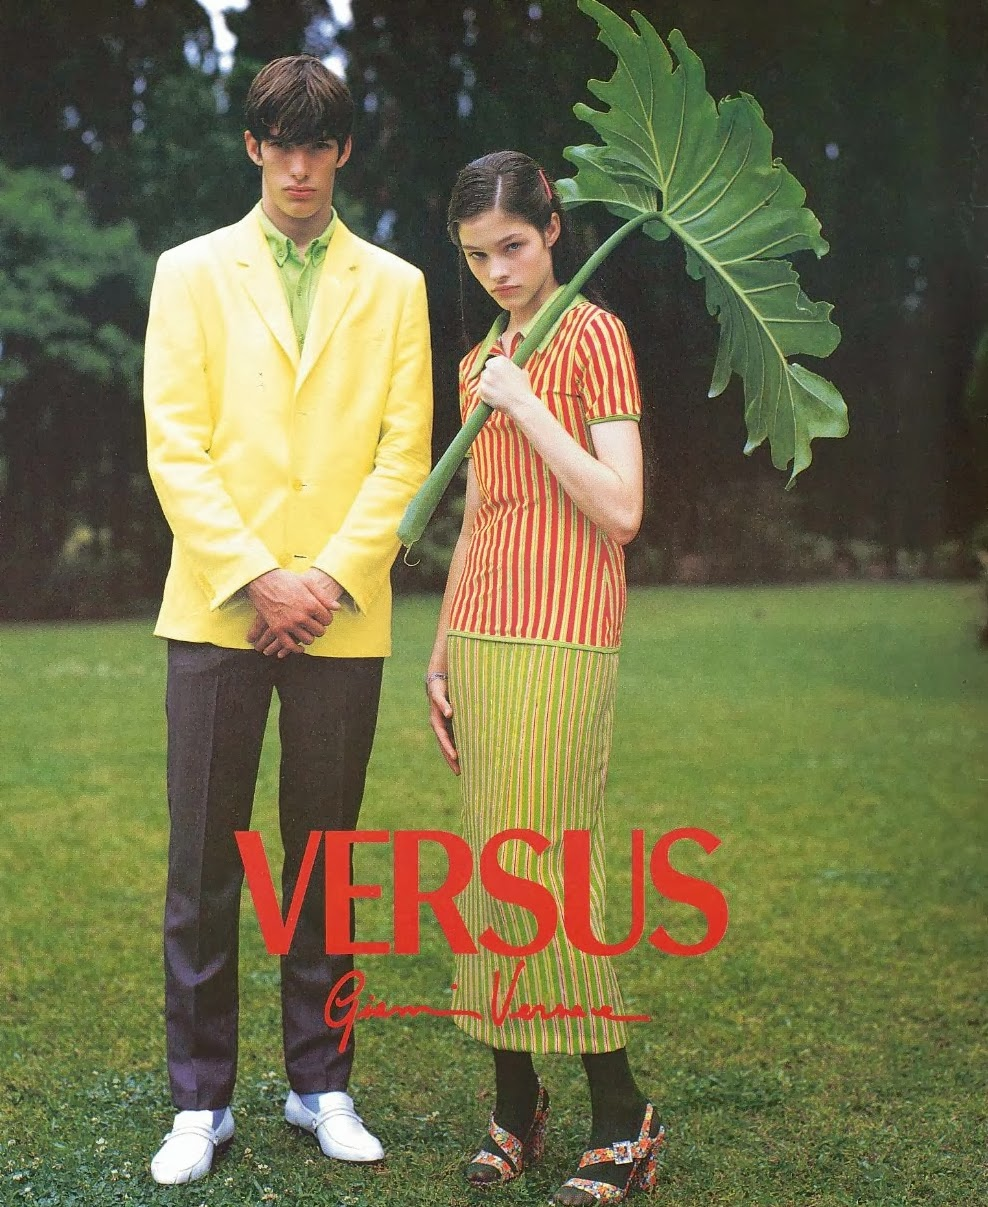 Ivan de Pineda and Lonneke Engel by Bruce Weber, VERSUS s/s 1996, 90's print ad, green grass, boy and girl, big leaf-umbrella, orange, green, springtime, dark stockings and floral heeled sandals with buckles, noncholance, ellow suit-jacket